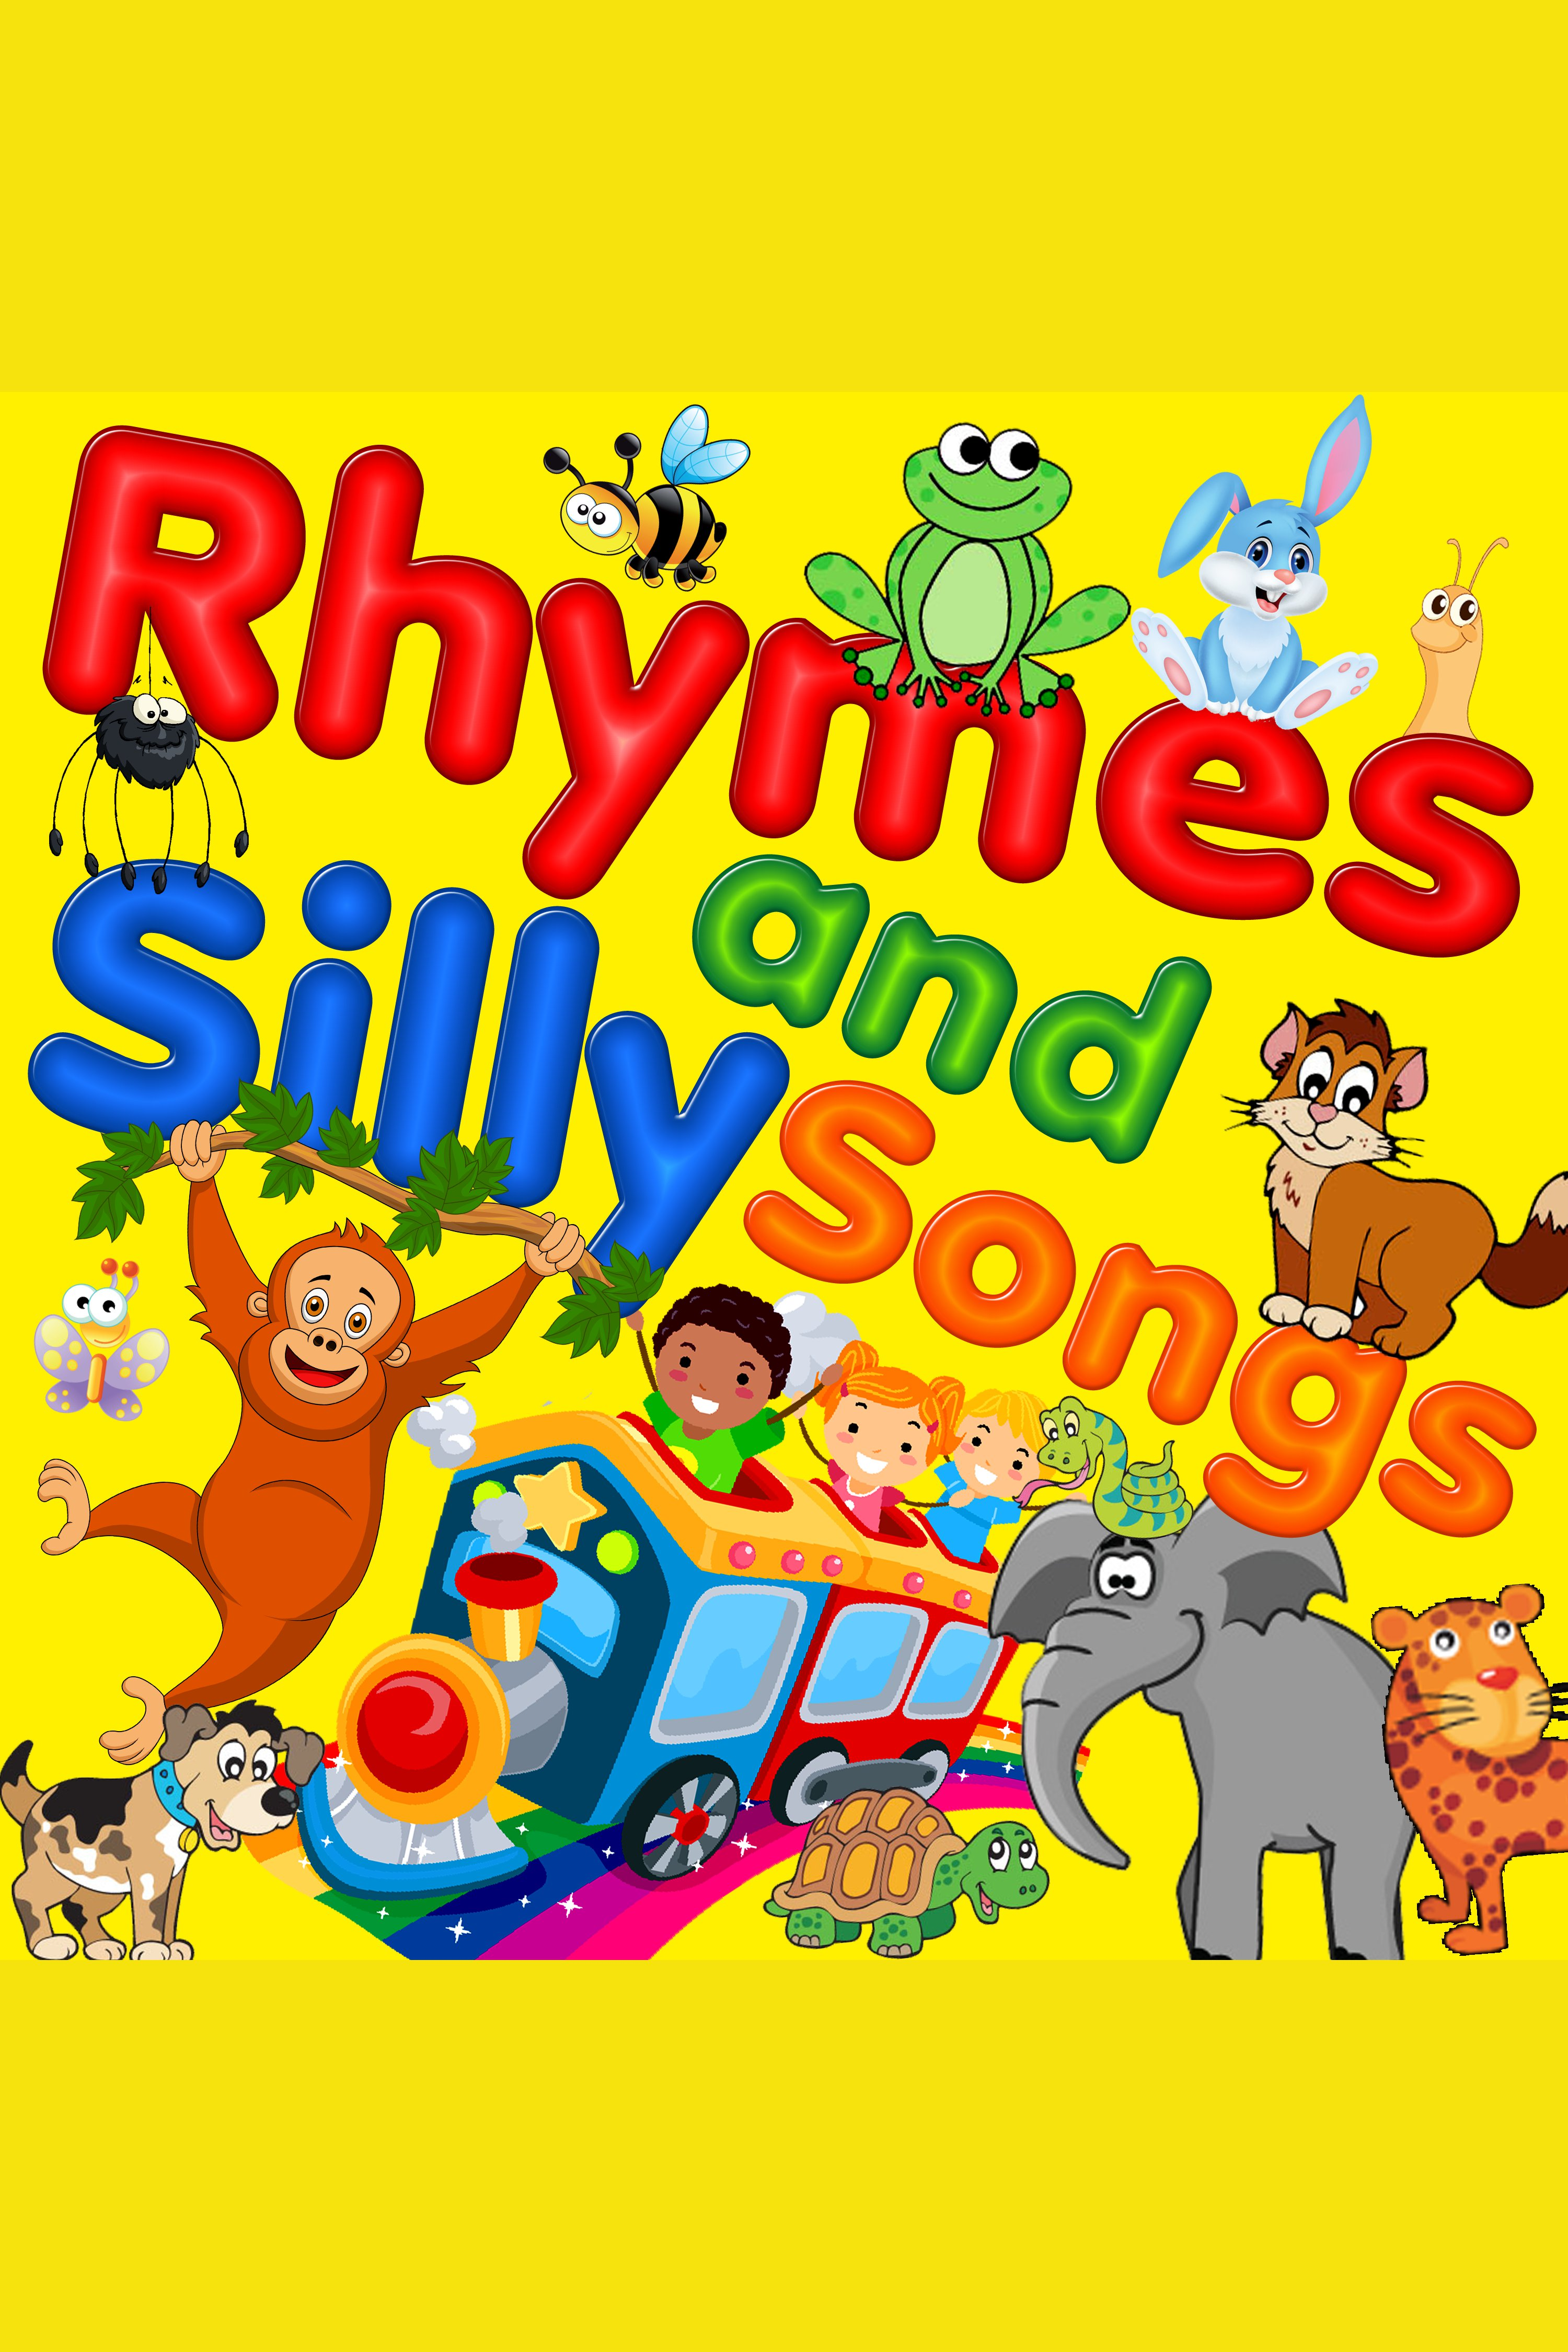 Rhymes & Silly Songs cover image